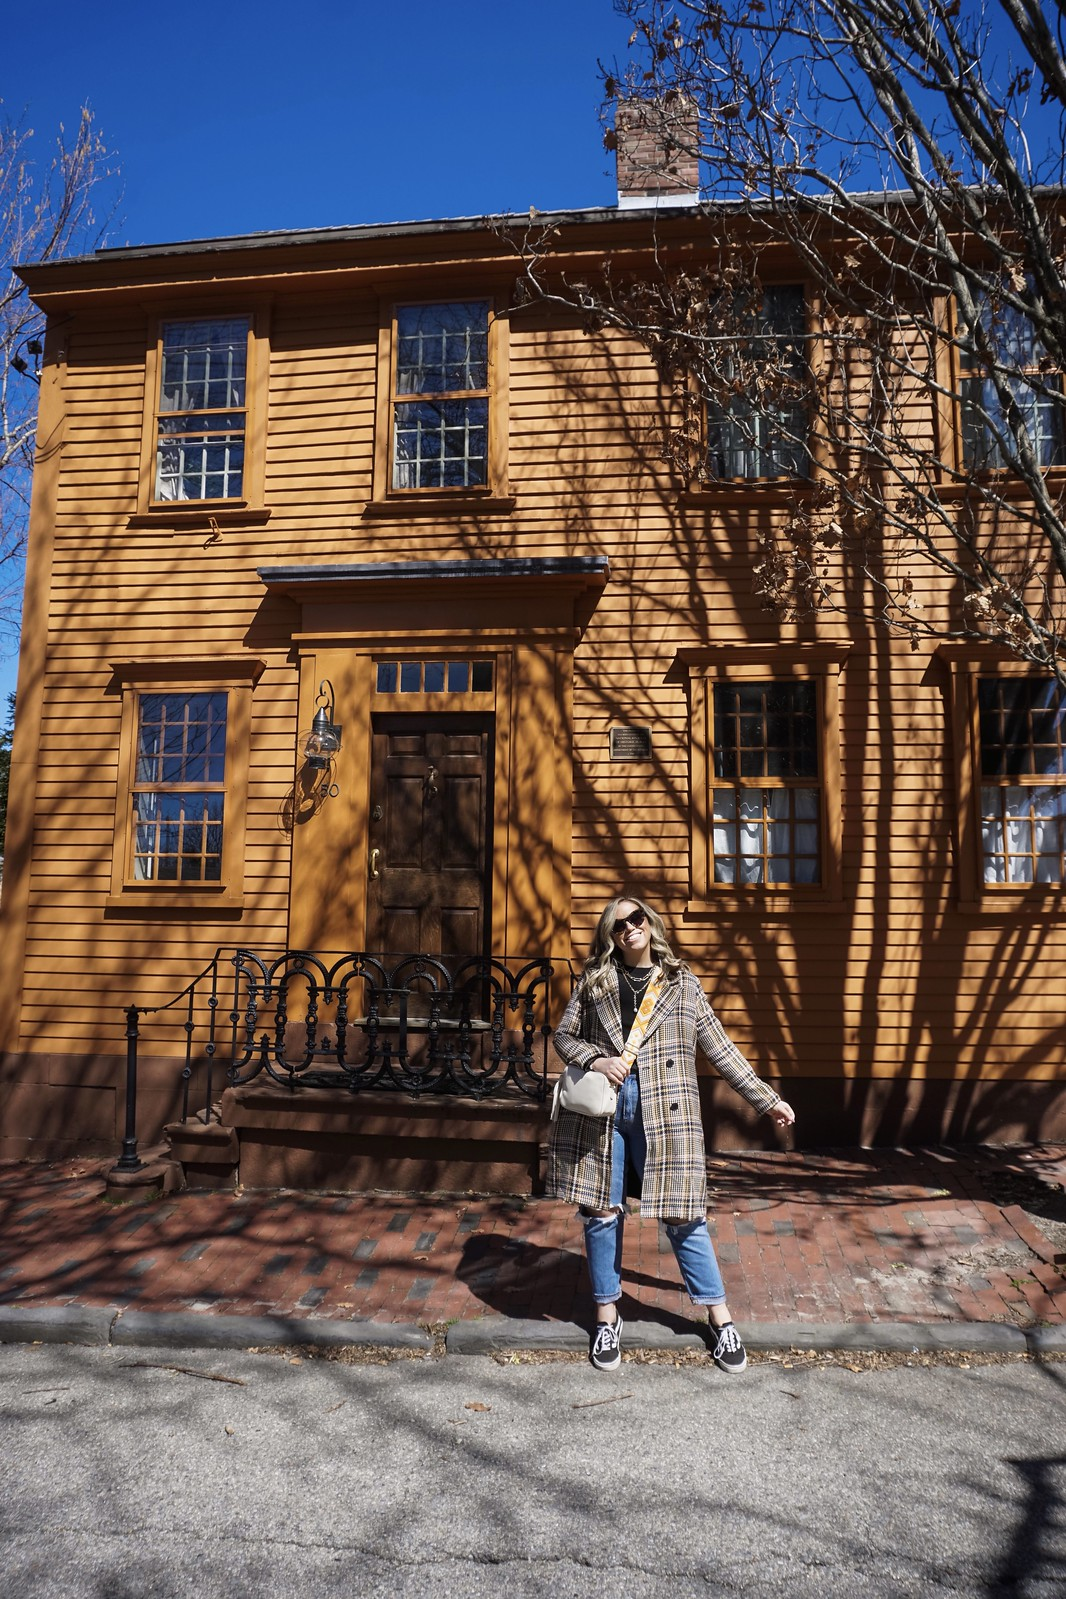 Orange Historical Home |  48 Hours in Newport Itinerary | A First Timer's Guide to 2 Days in Newport Rhode Island | What to do in Newport | Newport Travel Guide | Best Things to do in Newport | Best Places to Visit in Newport